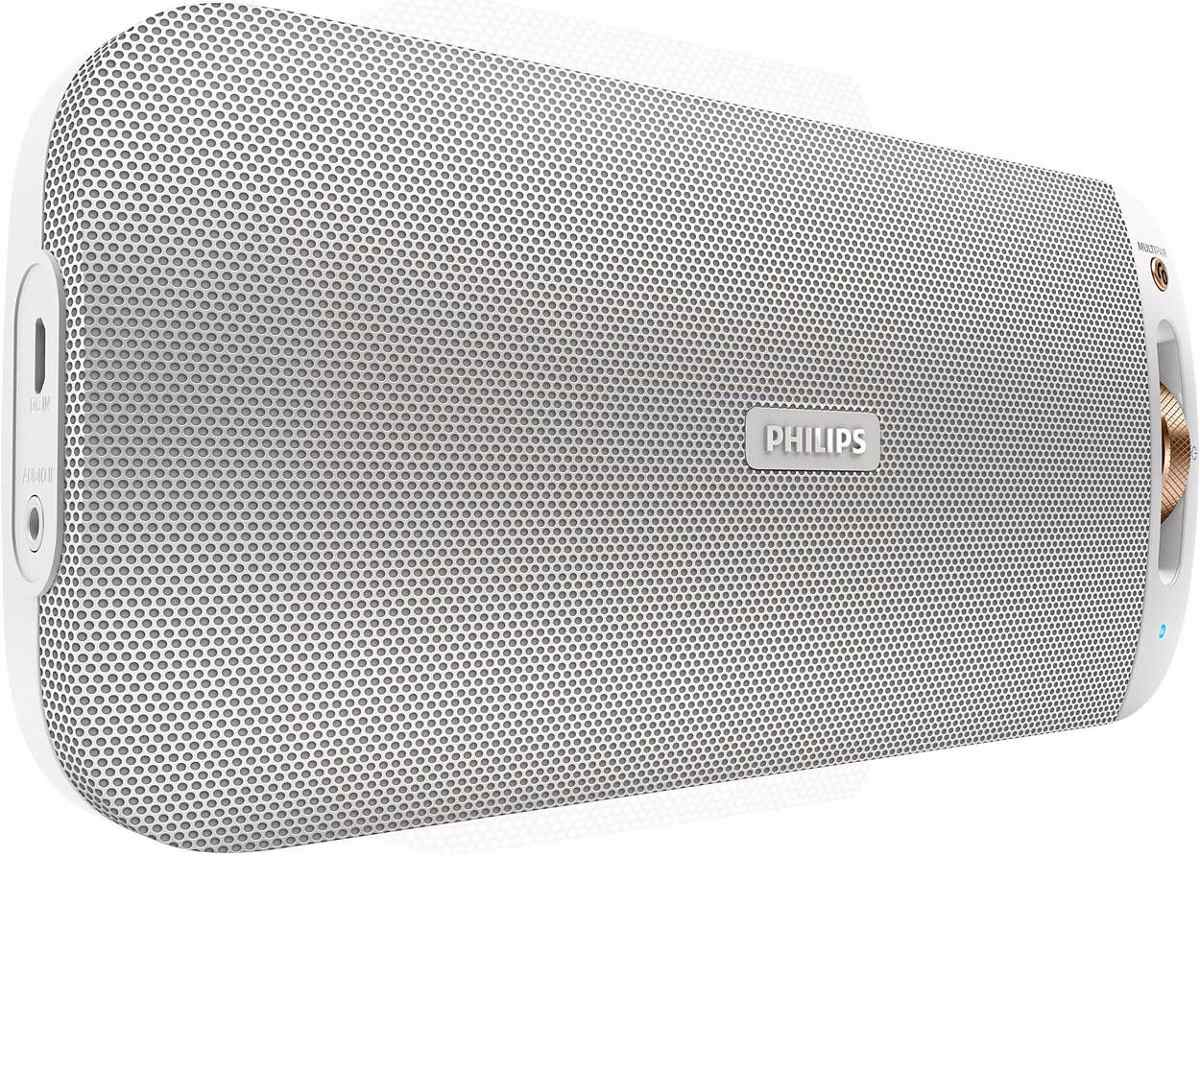 Parlantes - Philips Parlante Inalambrico Philips BT3600W/00 Bluetooth